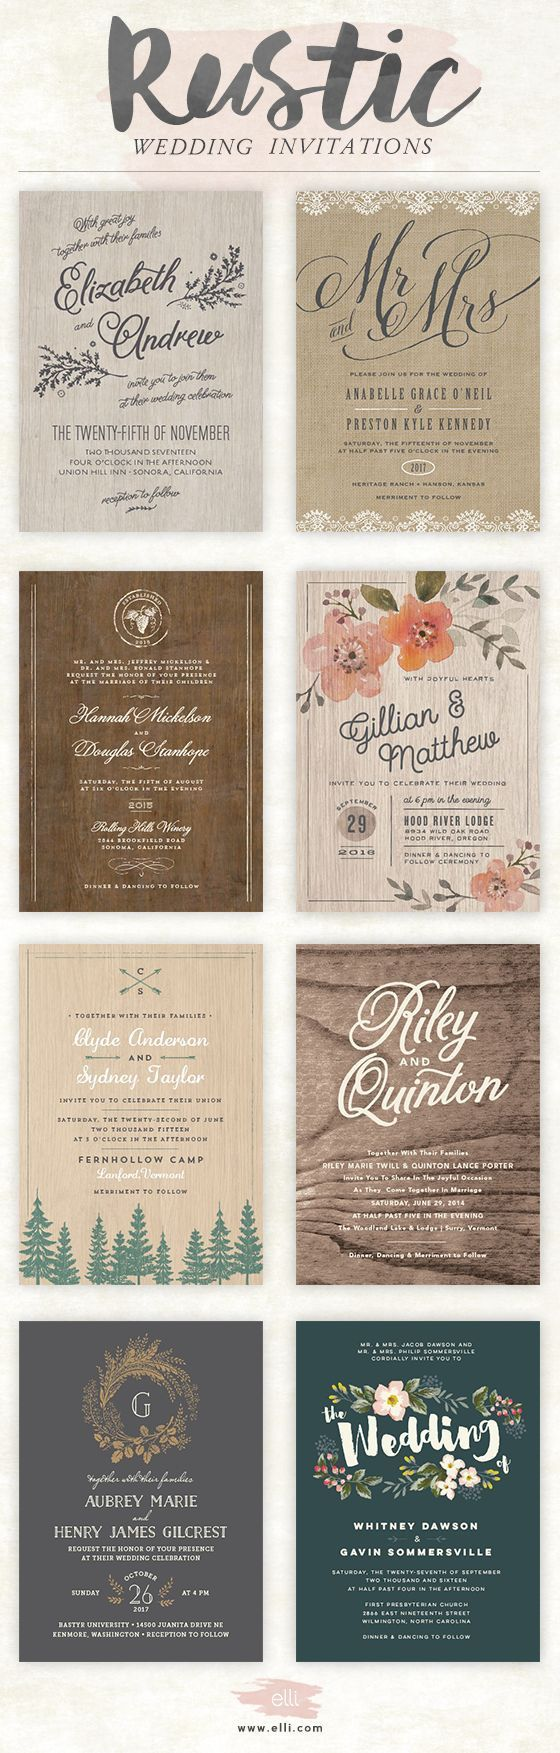 sample of wedding invitation letter%0A Rustic wedding invitations    Bella Collina Weddings